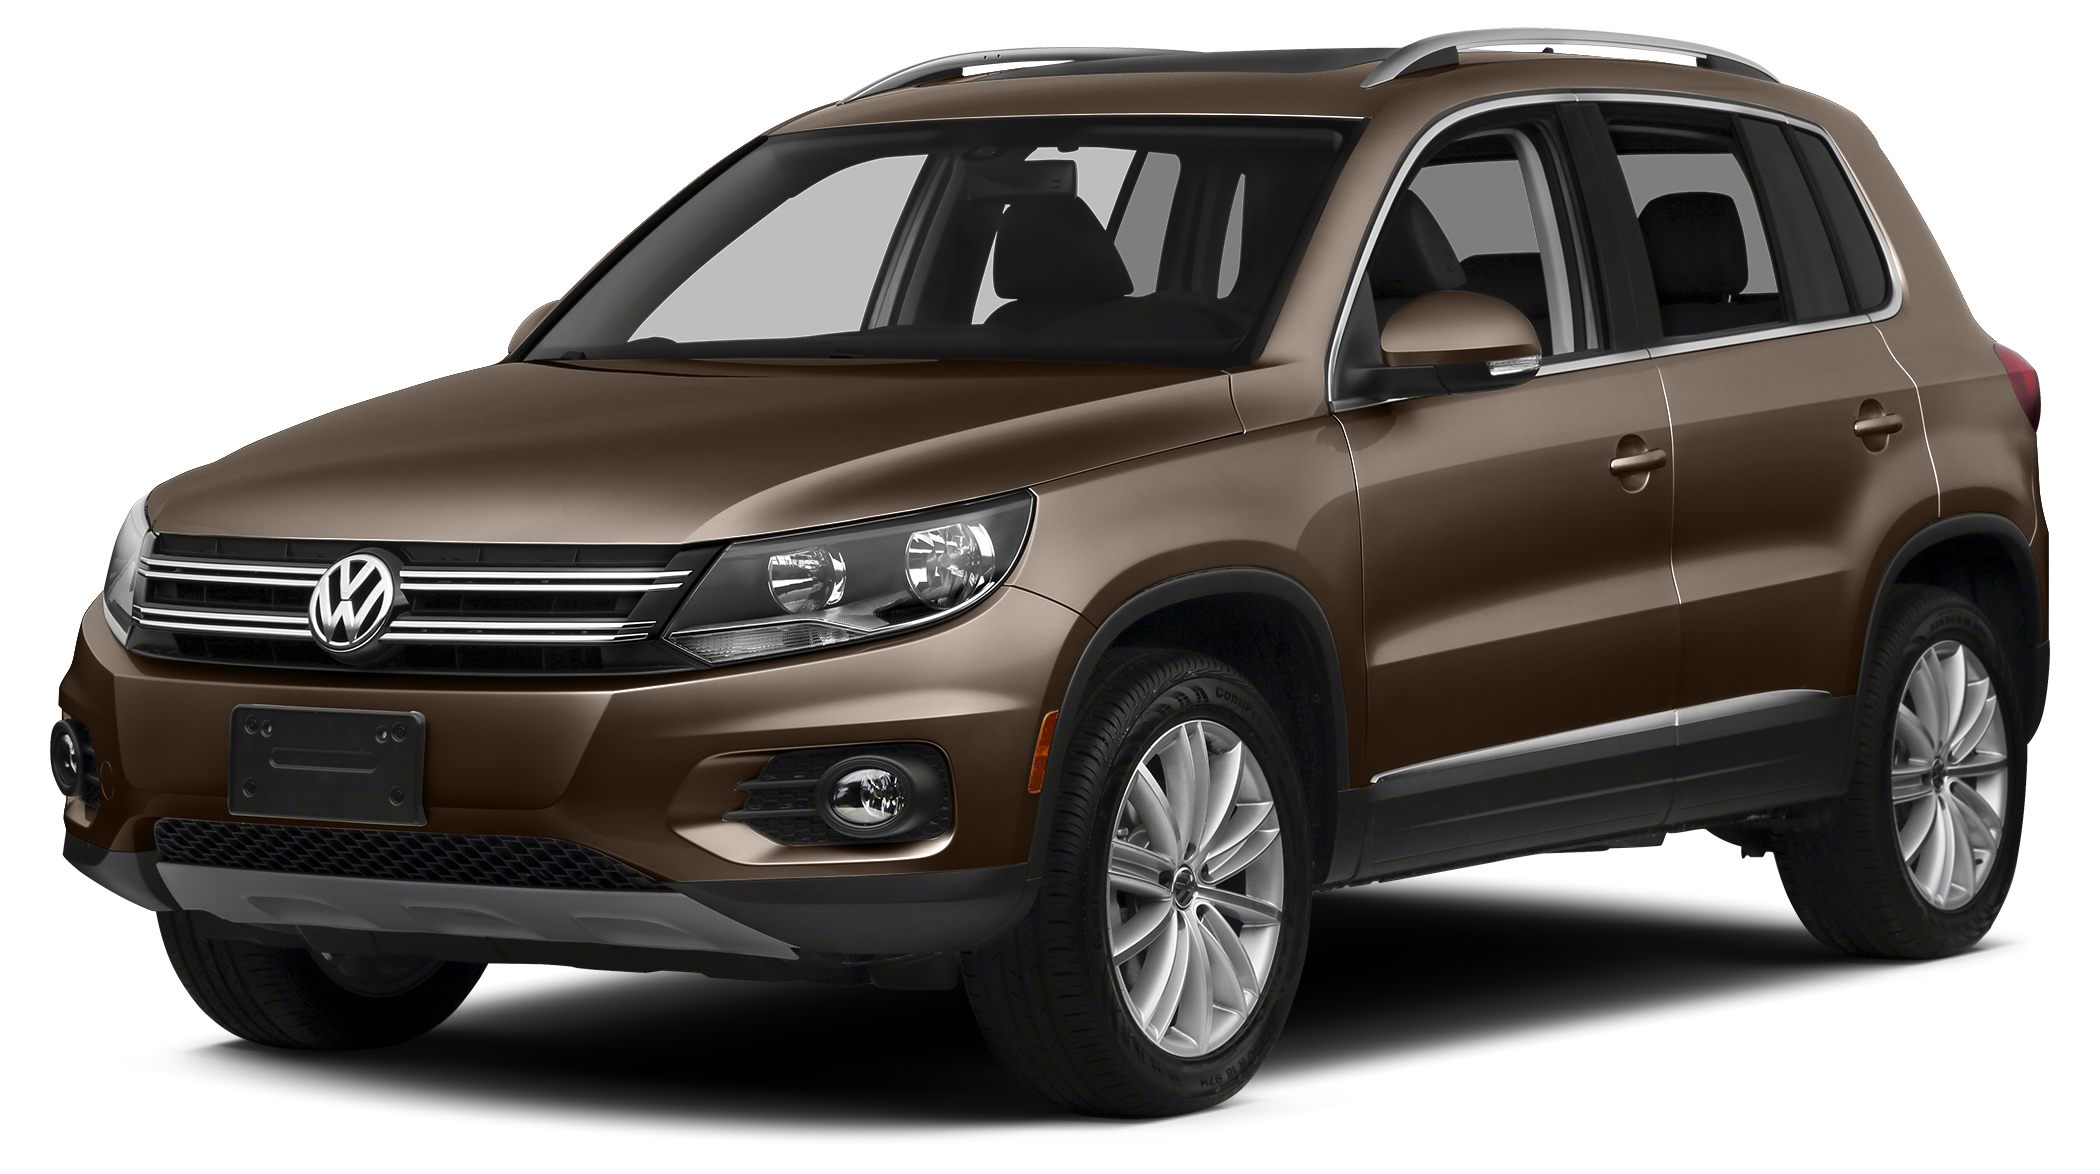 2013 Volkswagen Tiguan SE Drivers only for this sexy and dynamic 2013 Volkswagen Tiguan  Savor but